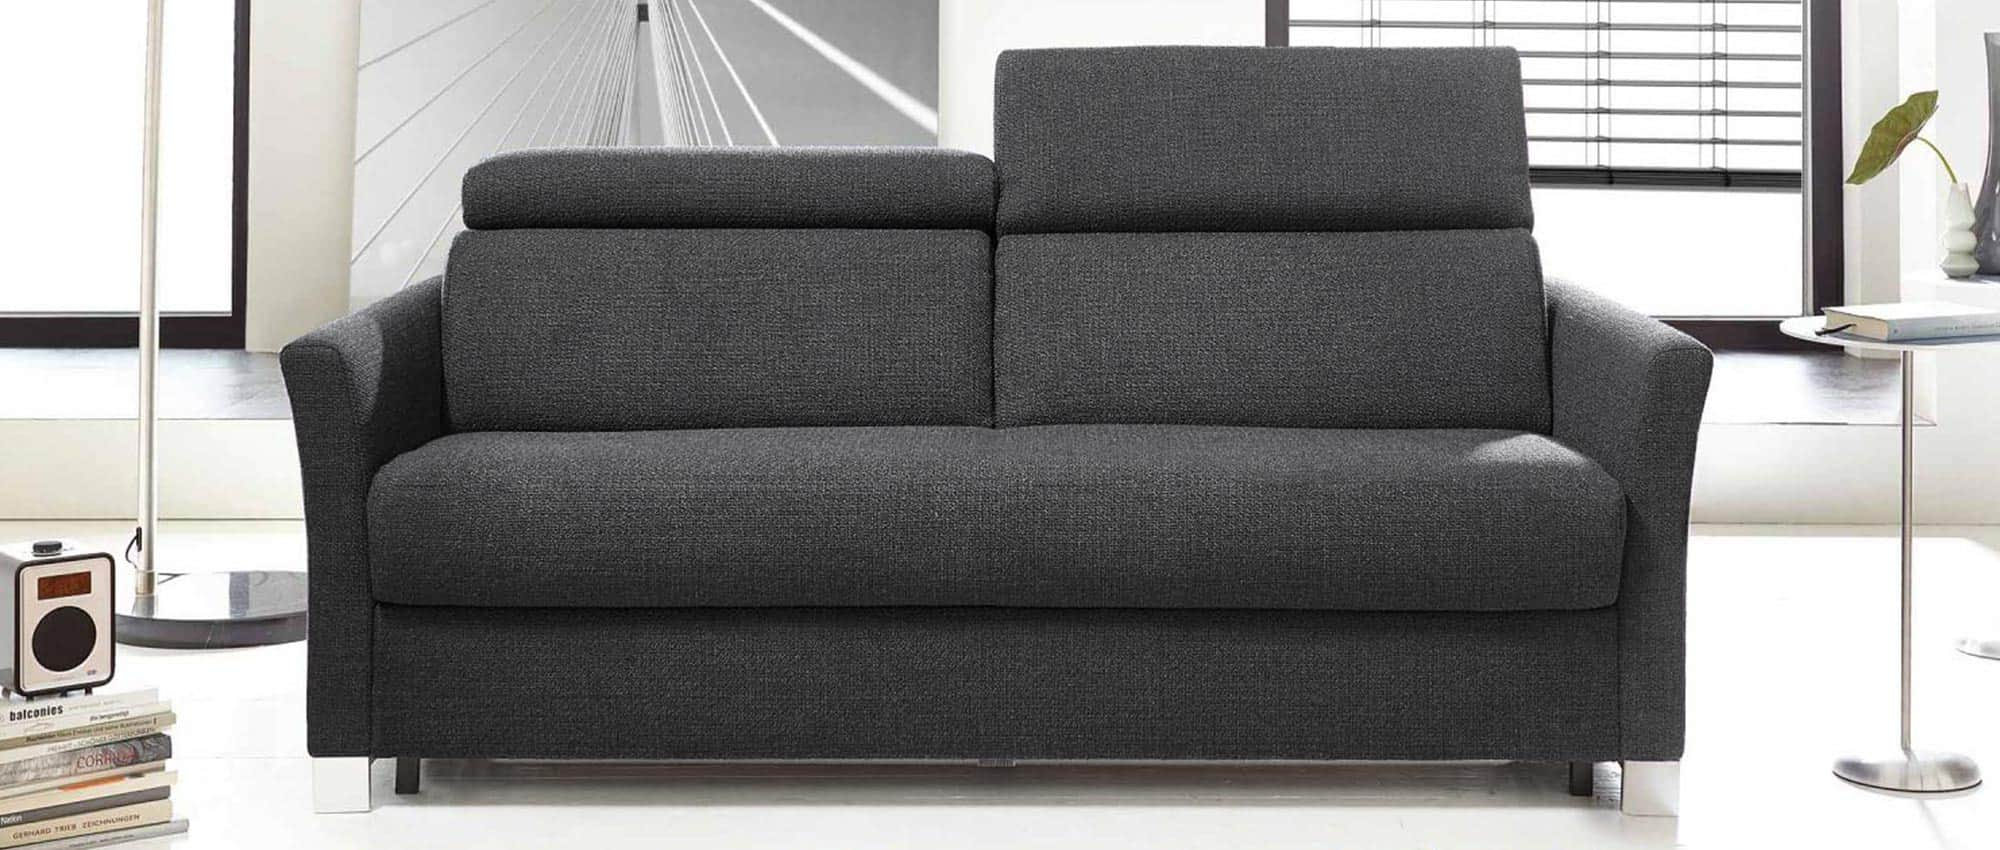 schlafsofa m nchen deluxe von sofaplus. Black Bedroom Furniture Sets. Home Design Ideas